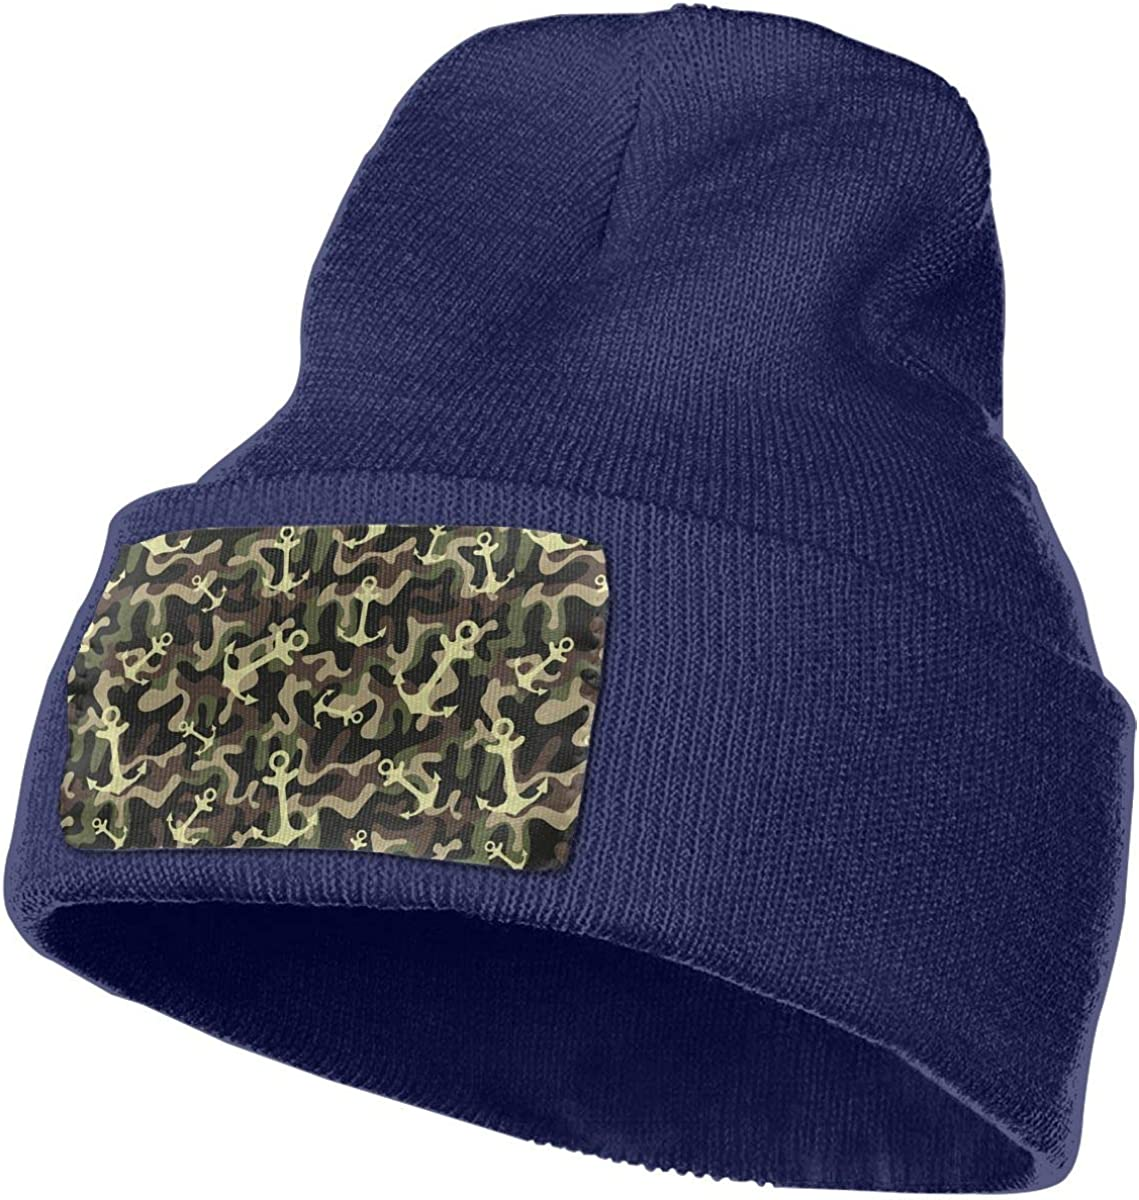 Anchor On Camouflage Military Unisex Fashion Knitted Hat Luxury Hip-Hop Cap